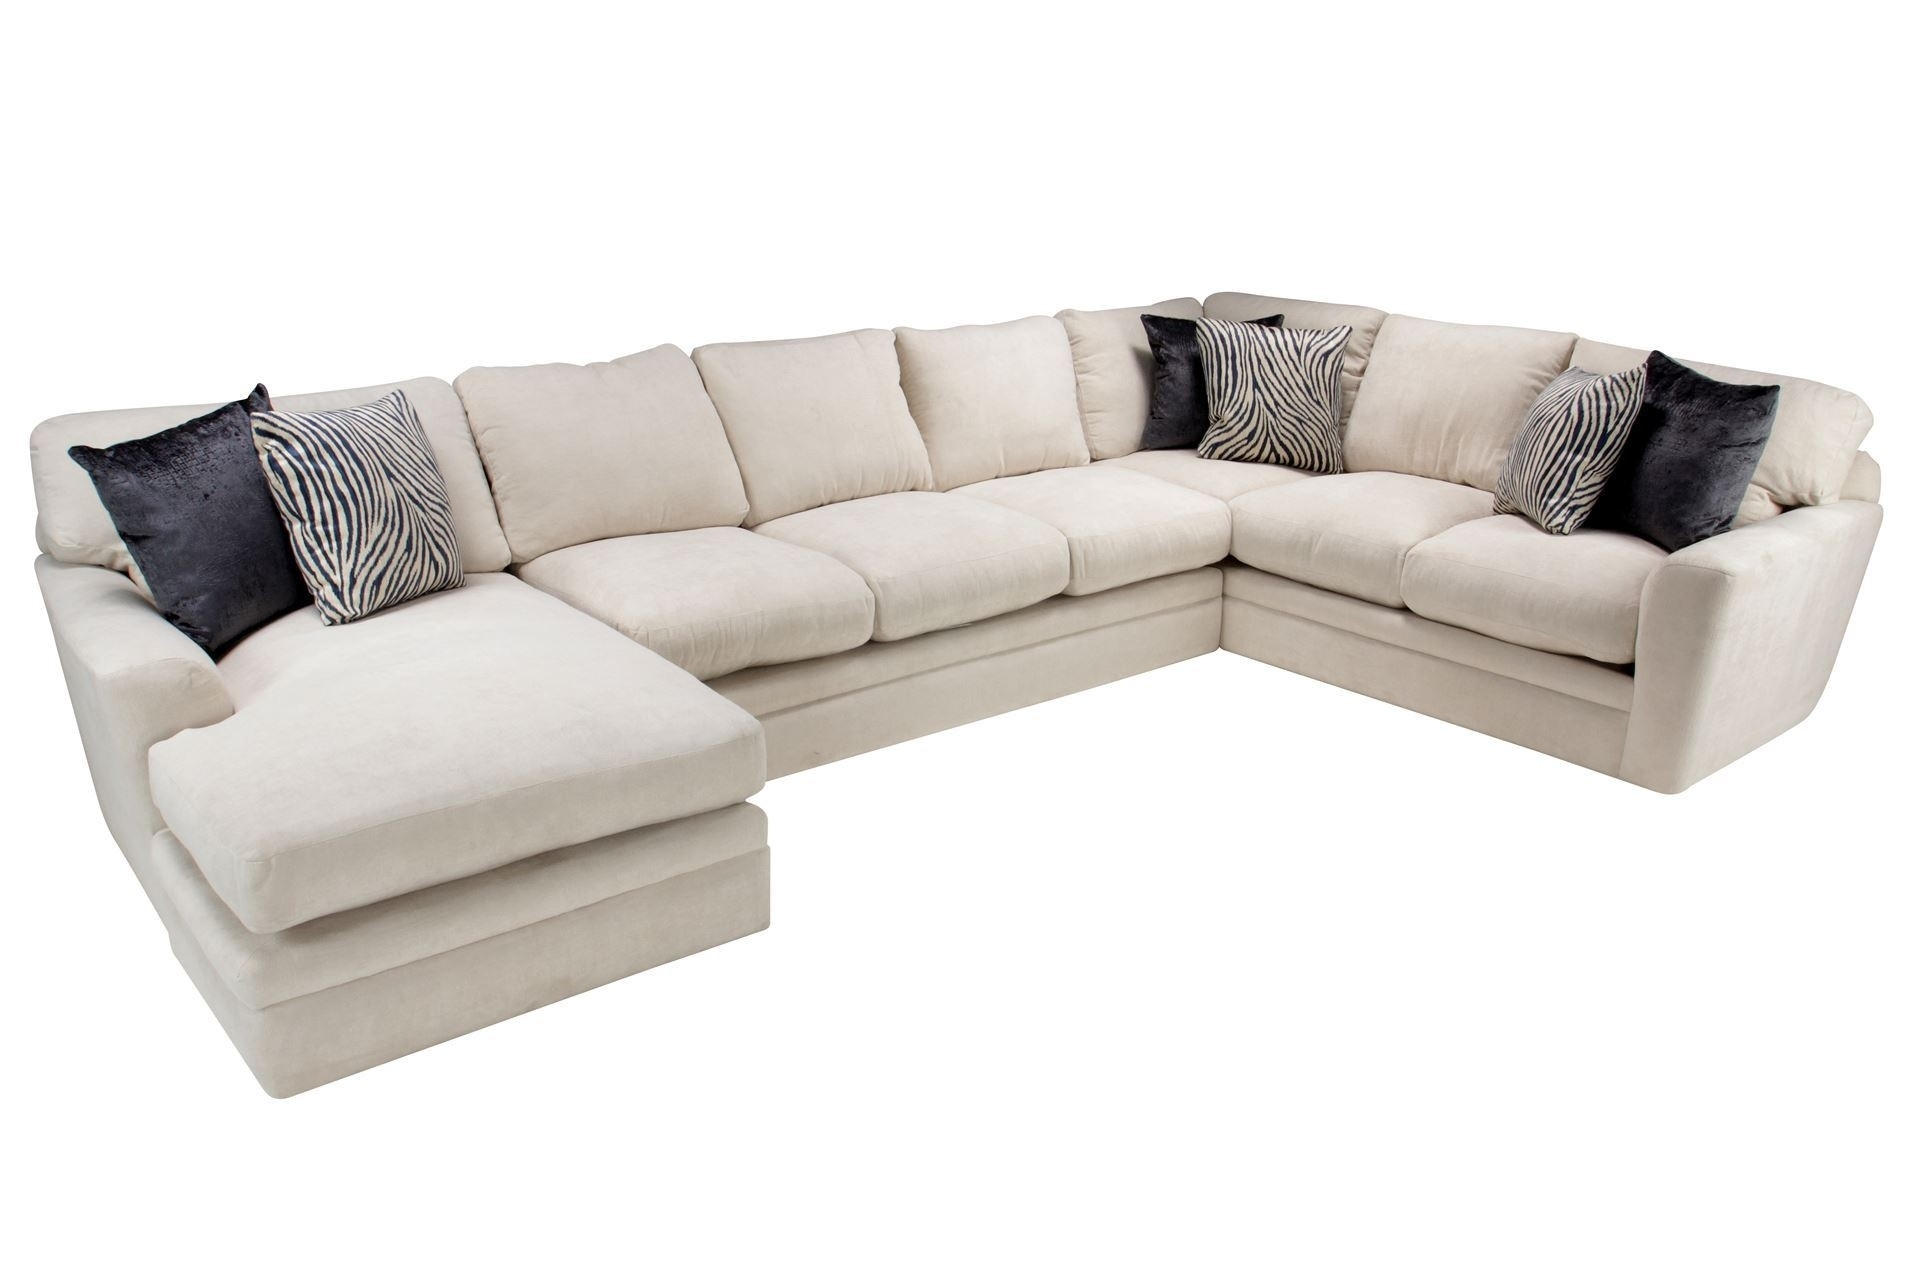 Living Spaces Sectional Sofas - Implantologiabogota.co for Delano 2 Piece Sectionals With Raf Oversized Chaise (Image 26 of 30)